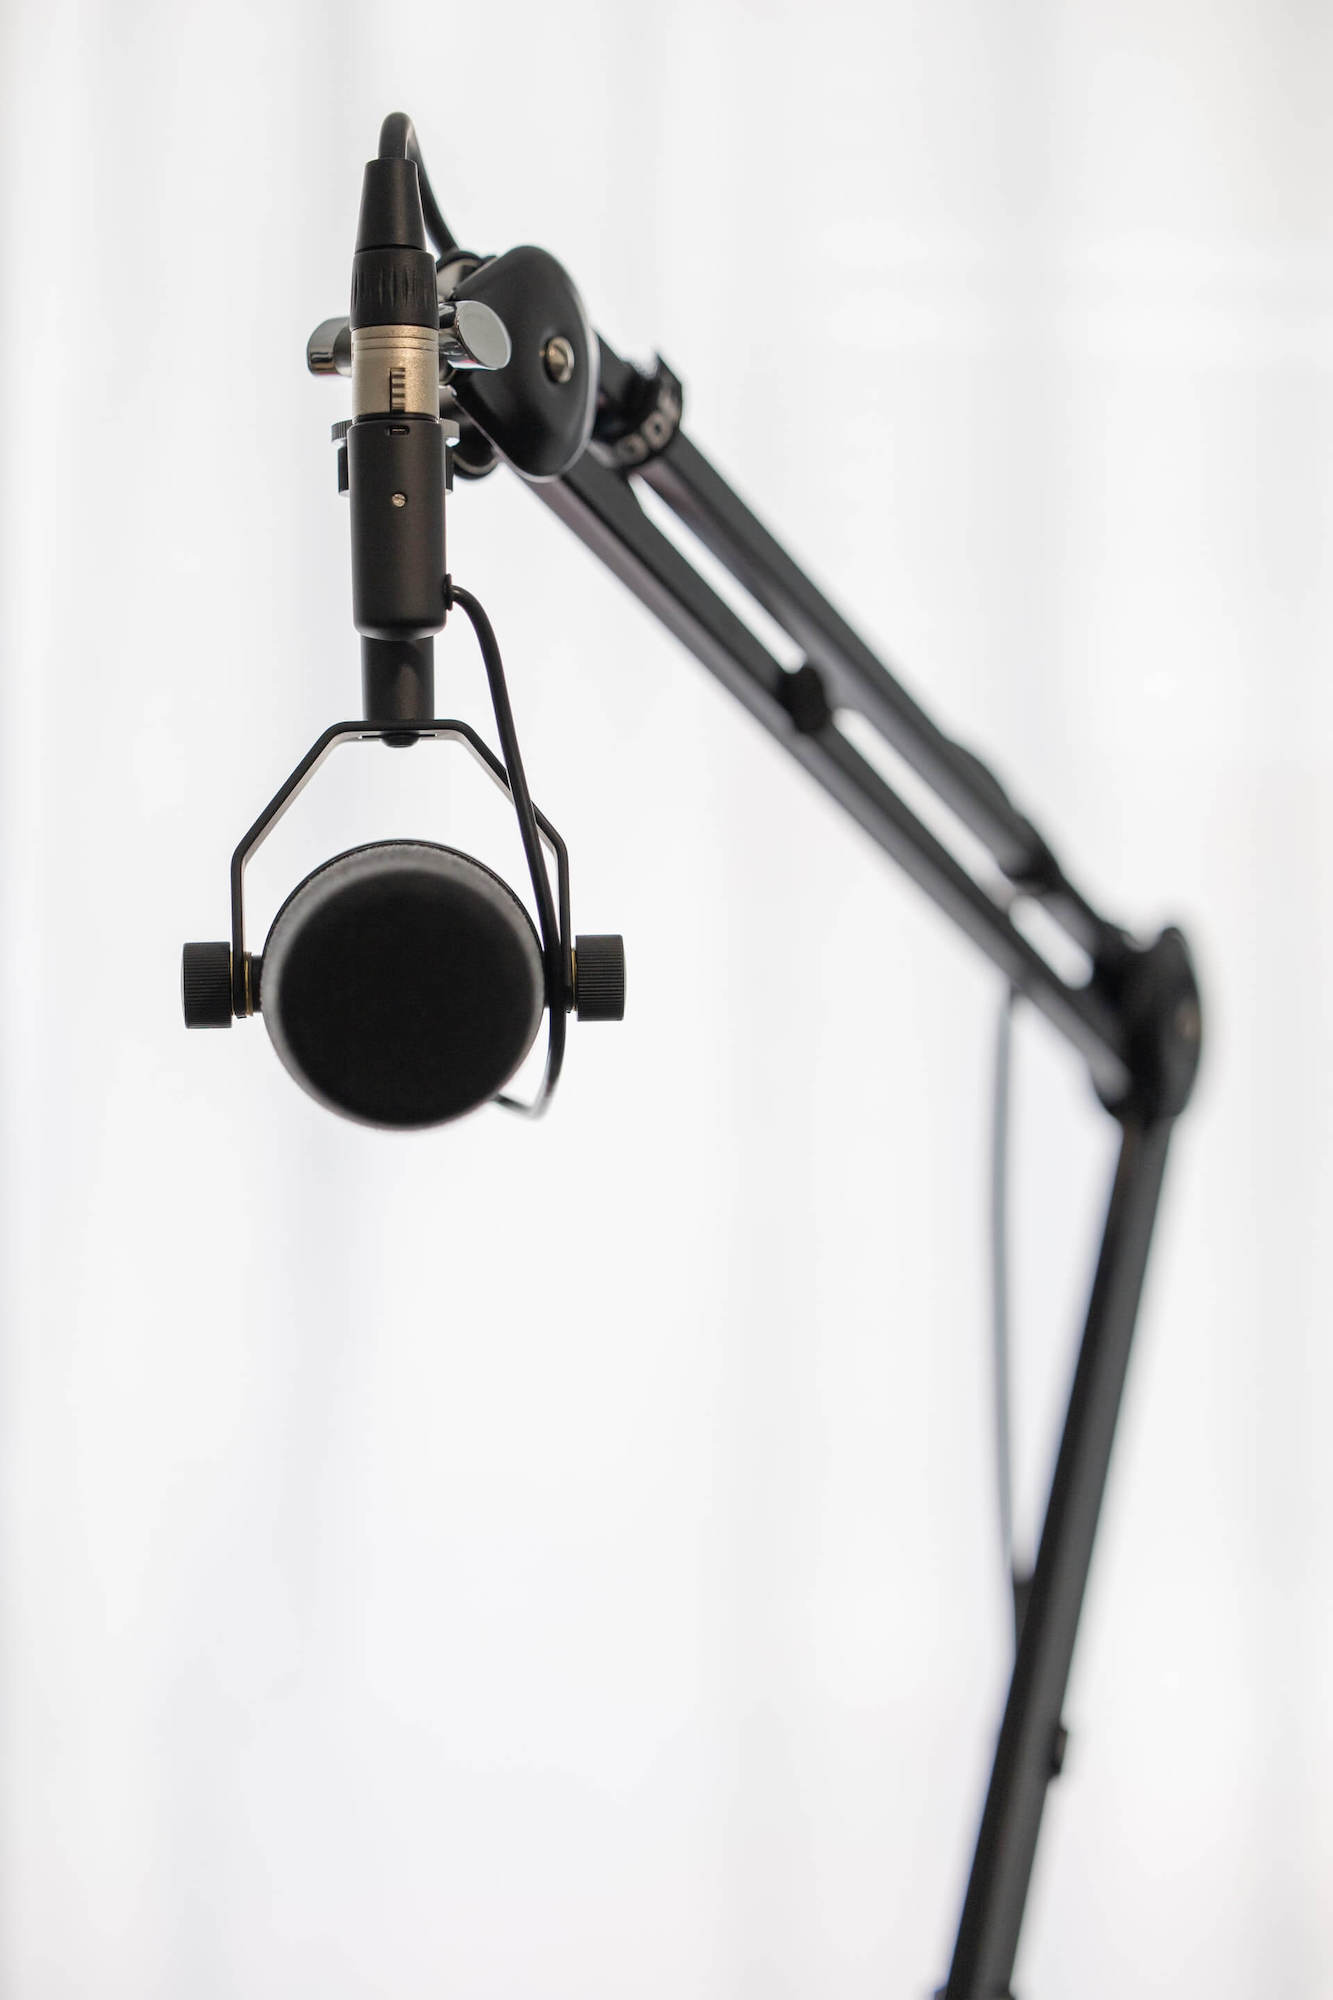 Podcast microphone stand